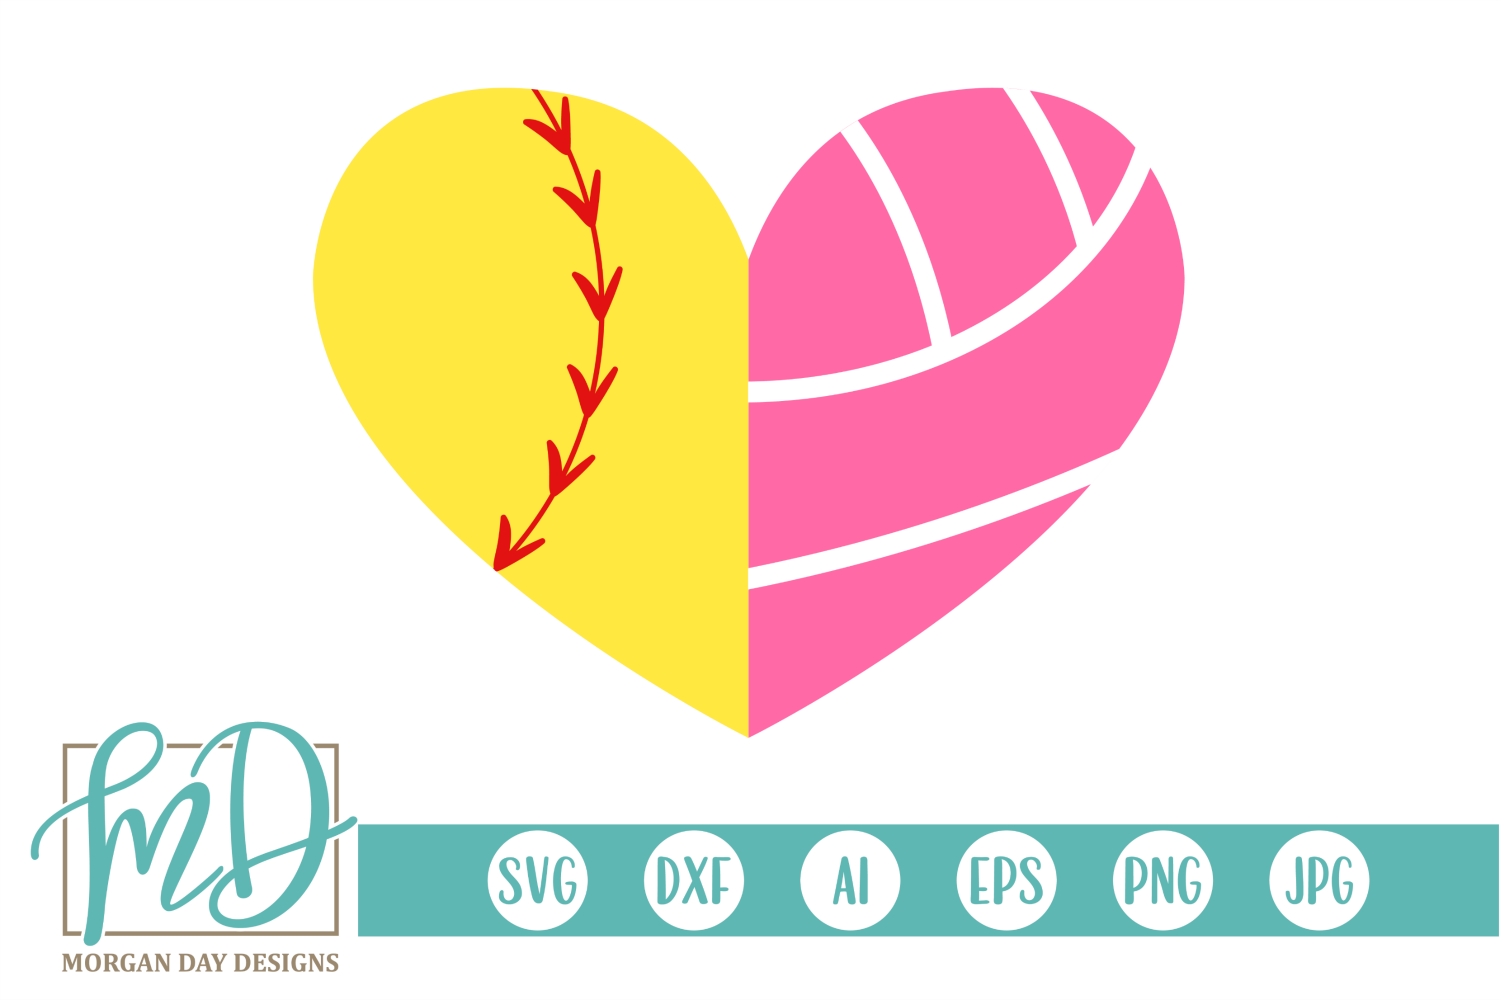 Softball Volleyball Heart SVG, DXF, AI, EPS, PNG, JPEG example image 1